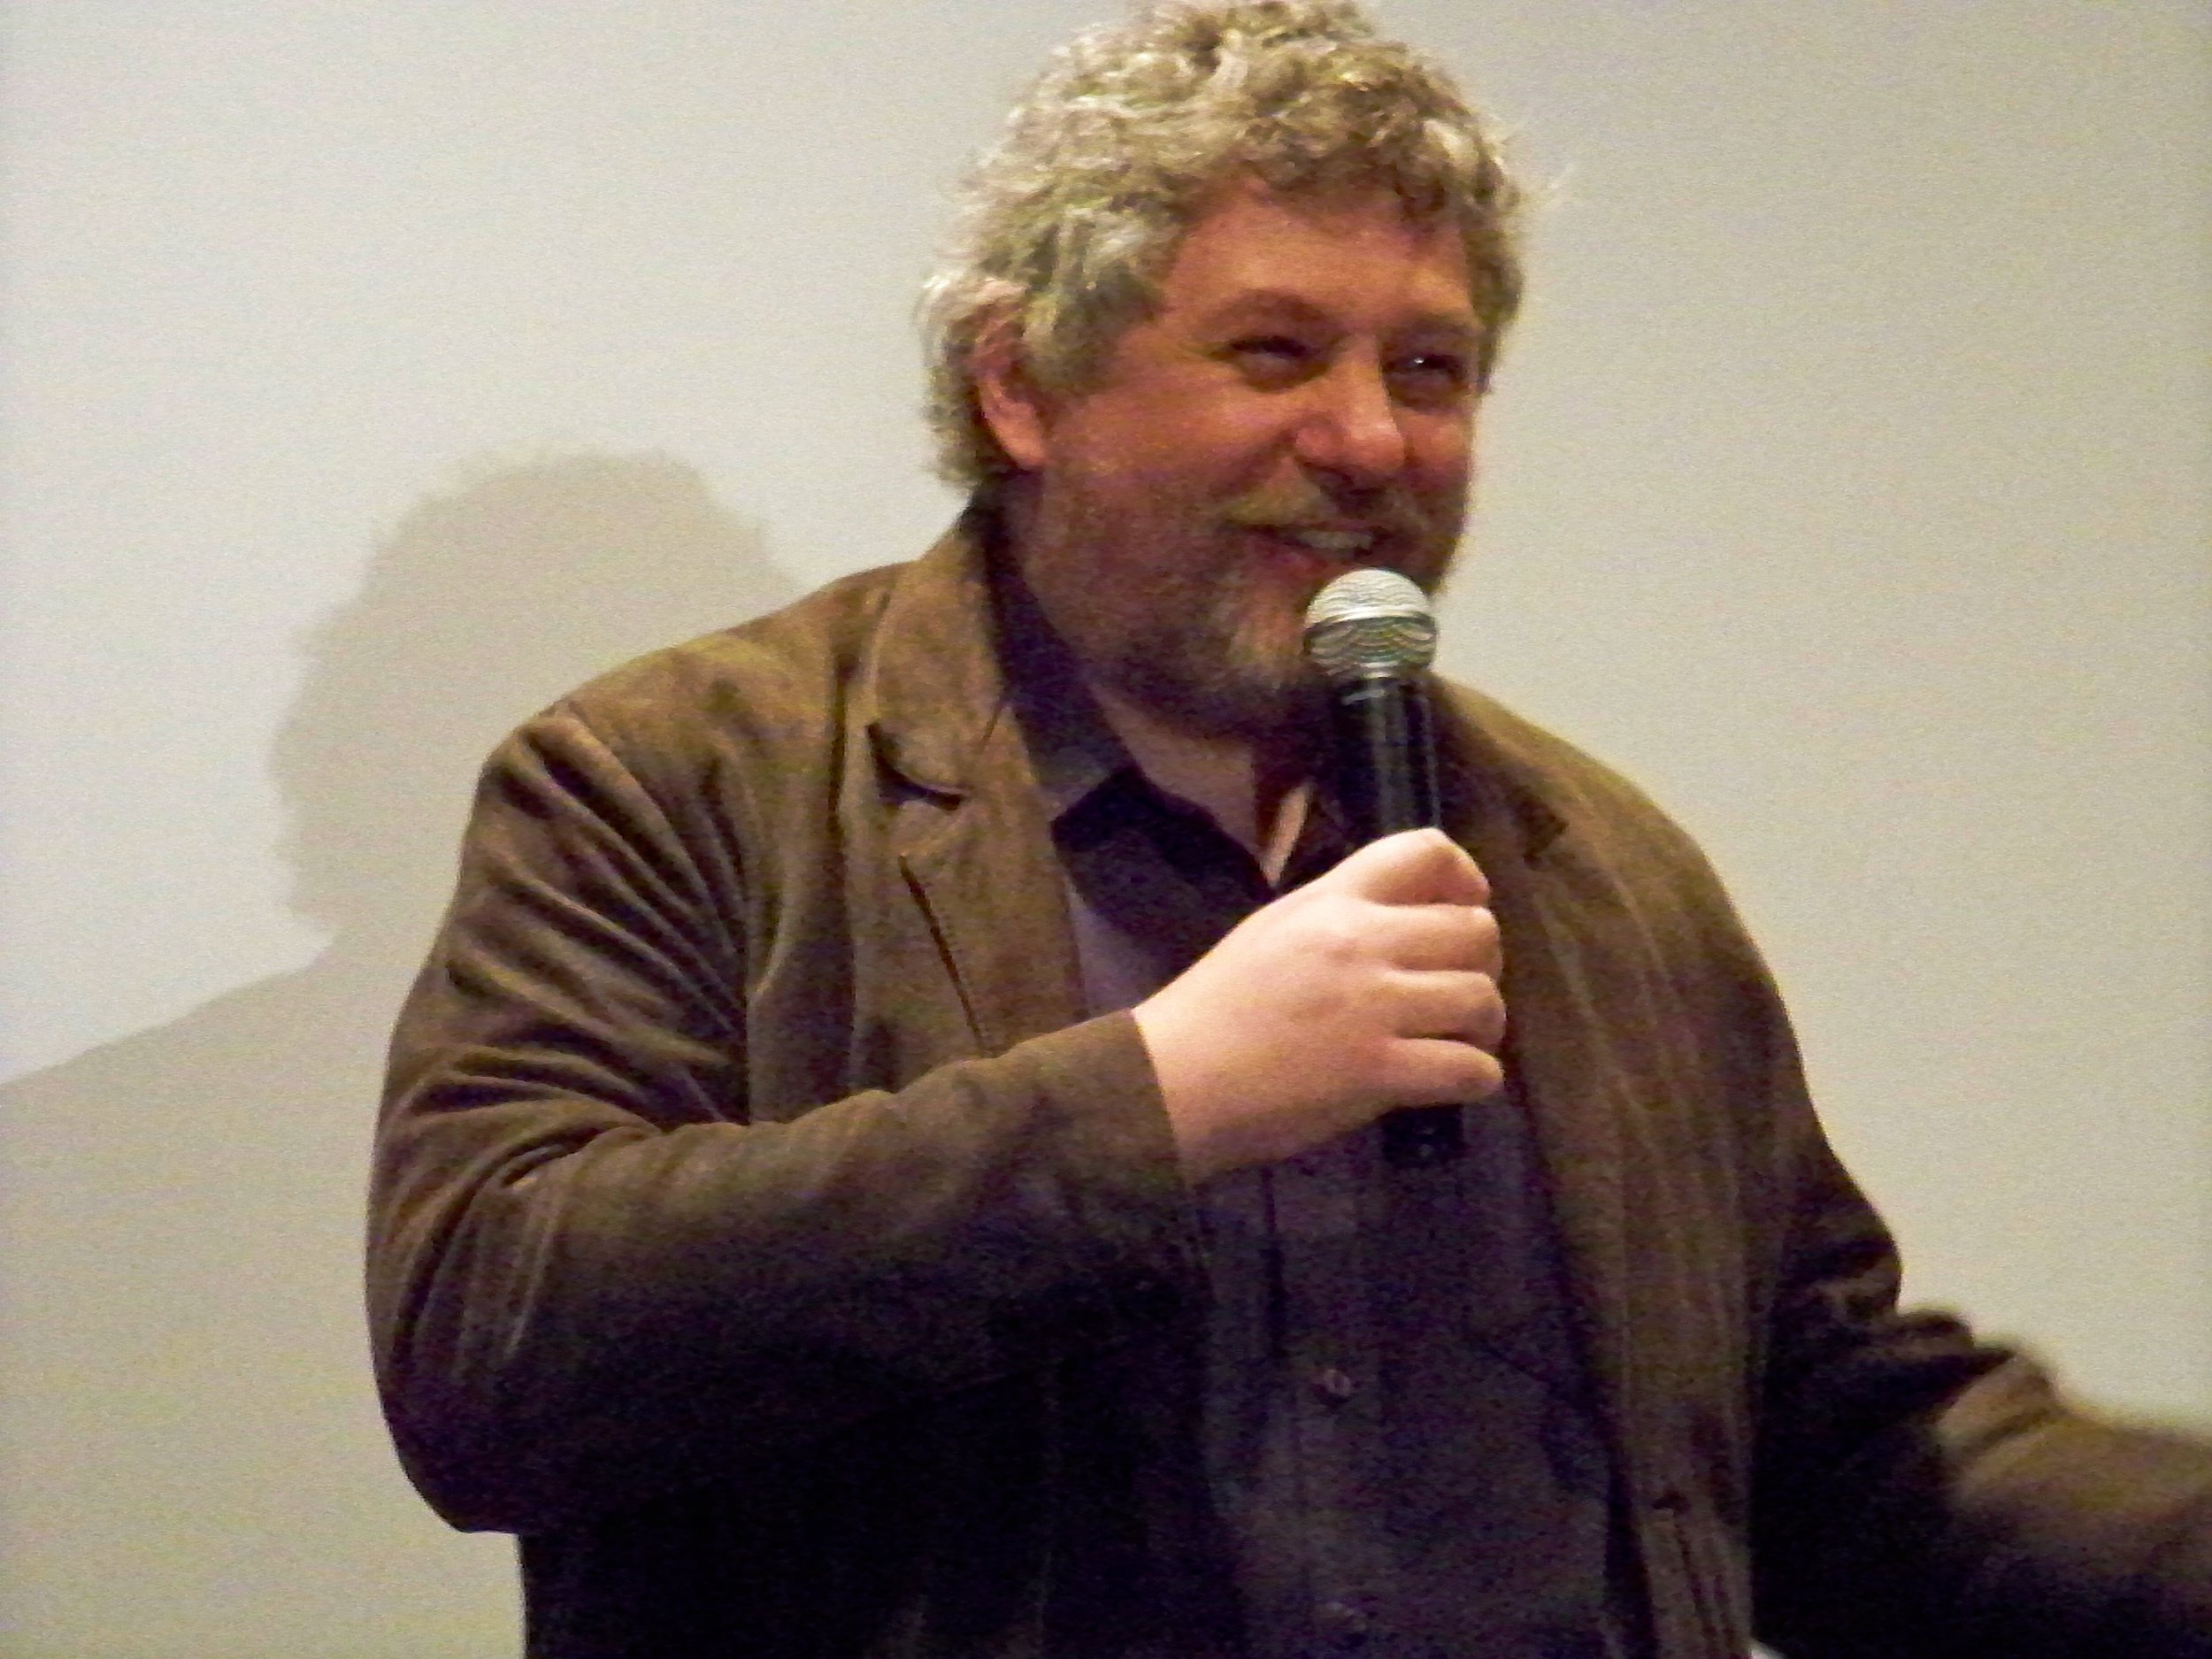 Keynote:Robert Shearman - Robert Shearman has worked as writer for television, radio and the stage.Rob was one of the writers for the BAFTA award winning first series of the revived Doctor Who series starring Christopher Eccleston. His episode, 'Dalek', was runner-up for a Hugo Award, and his award winning contributions to the audio range of Doctor Who released by Big Finish have been broadcast on BBC Radio. He also contributed to the second series of BBC1's Born and Bred.